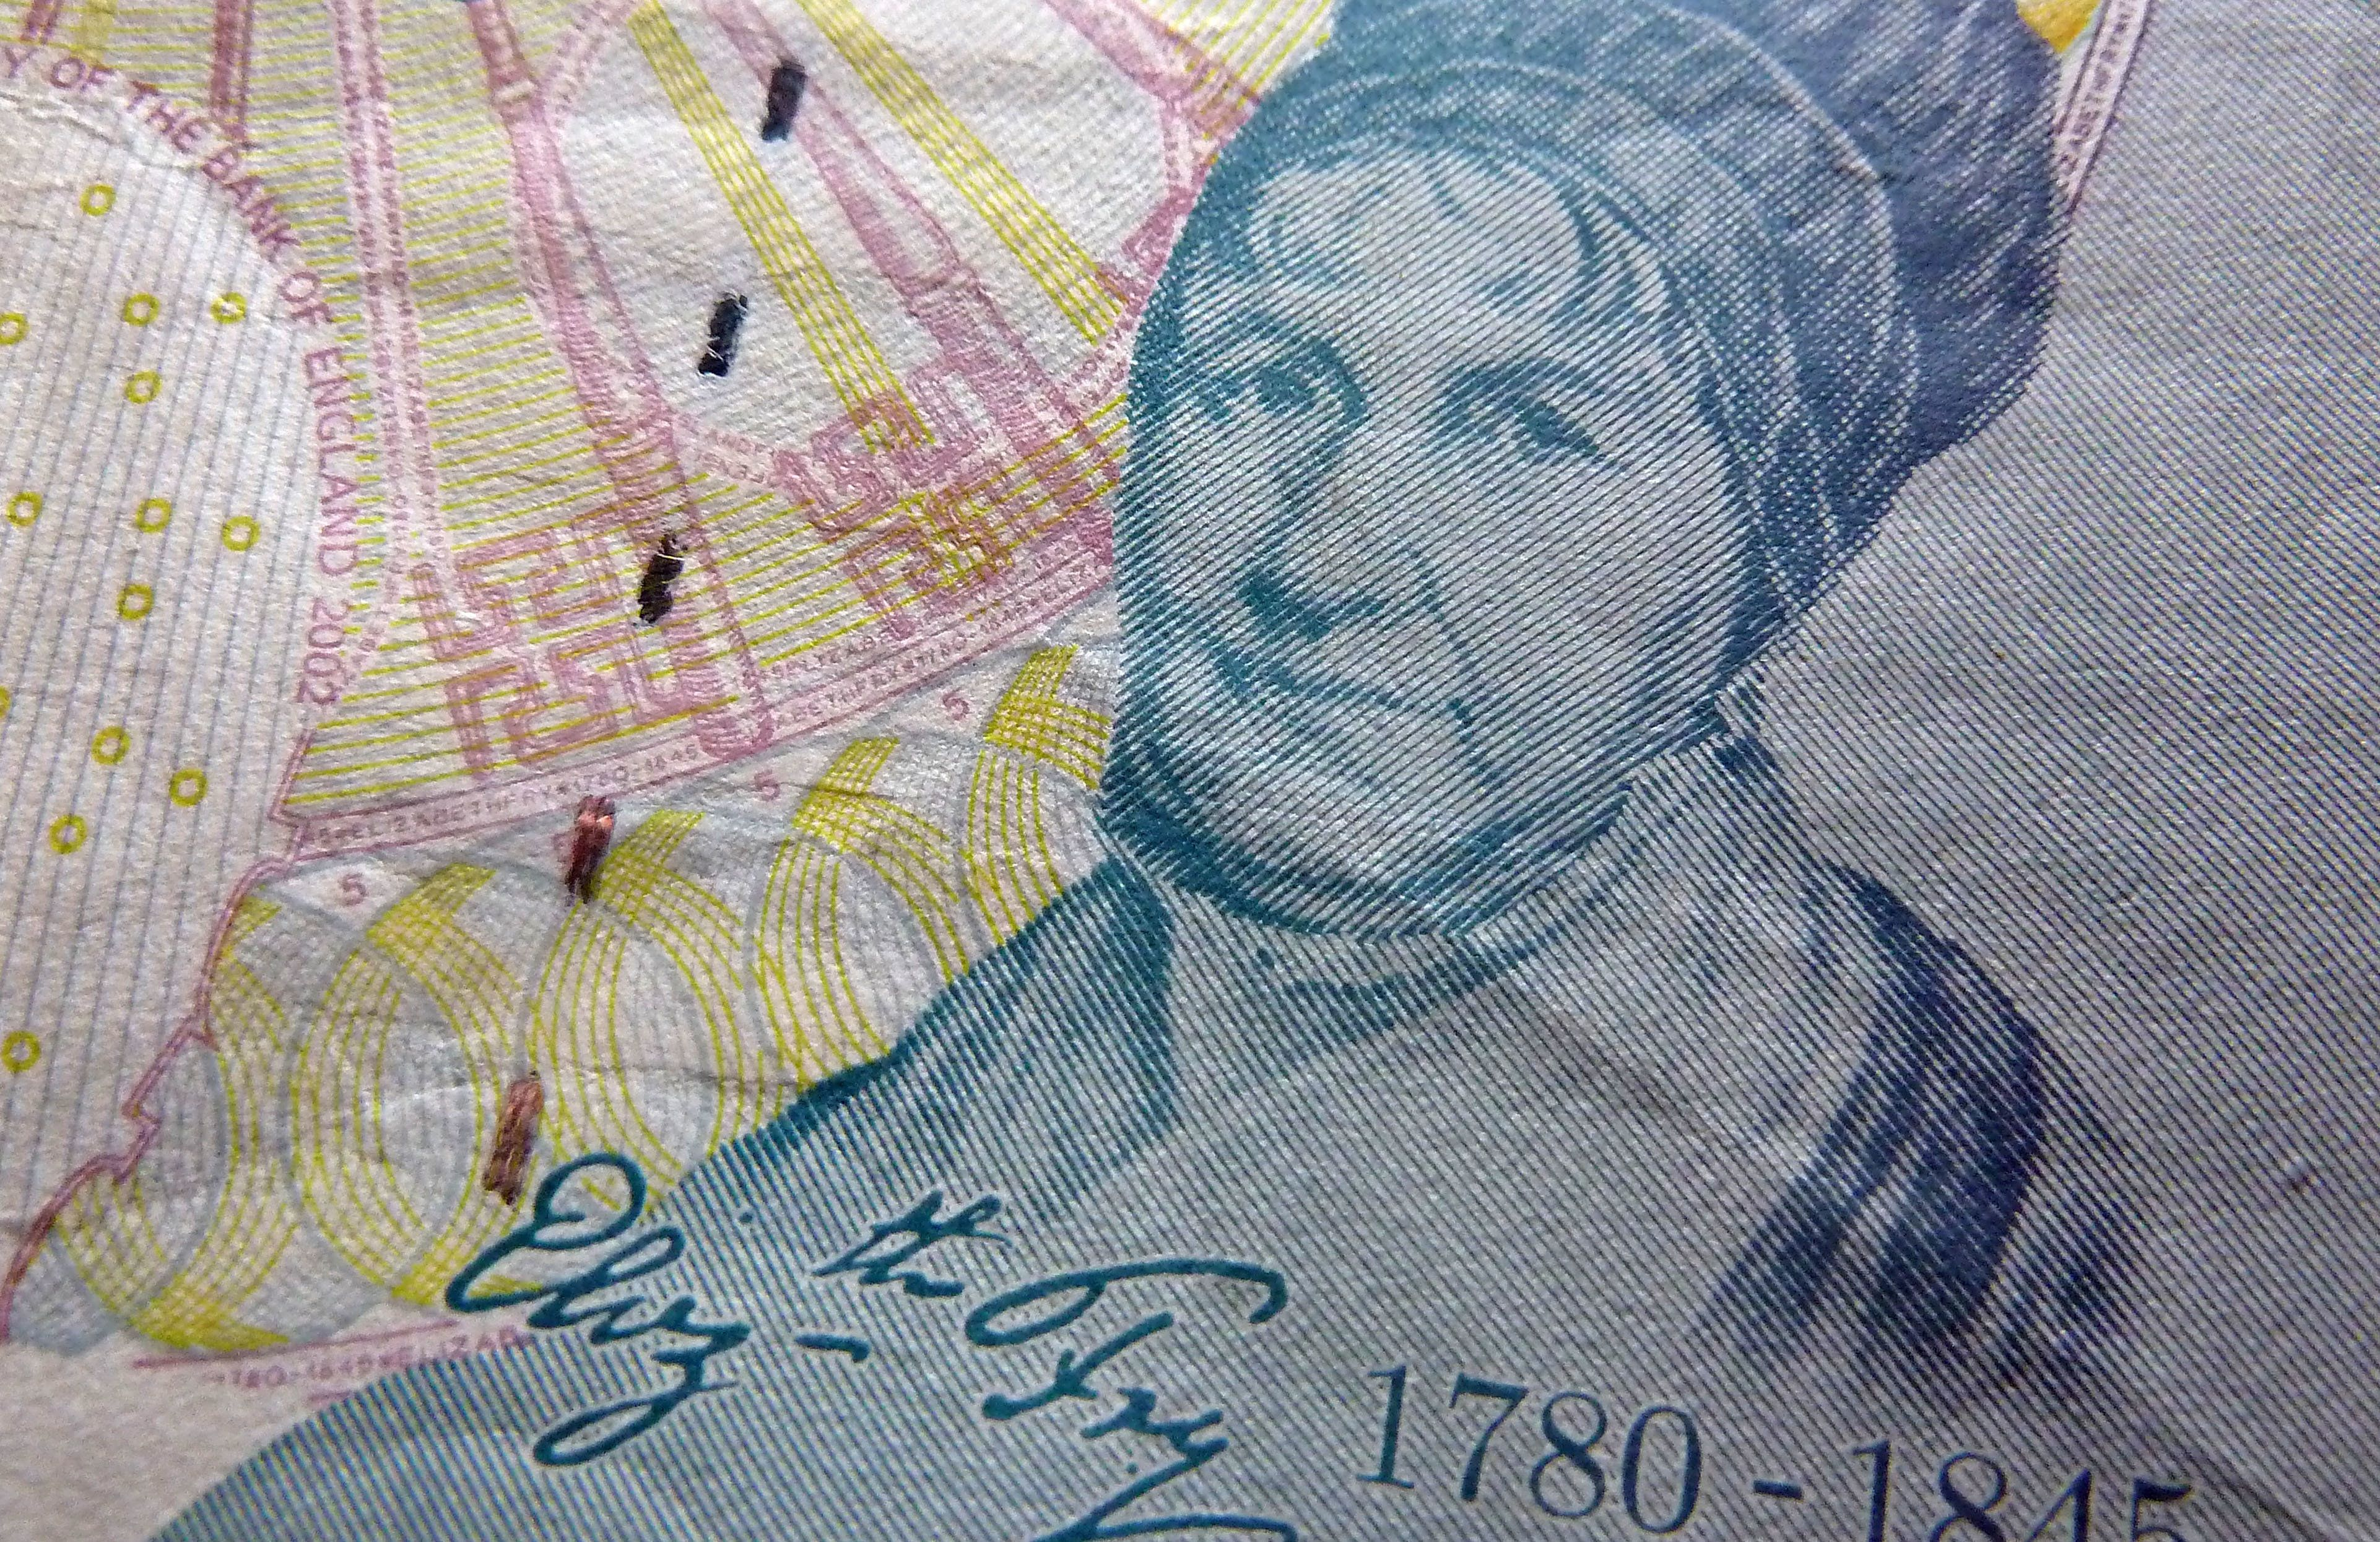 The old-style £5 note featuring Elizabeth Fry goes out of circulation on 5